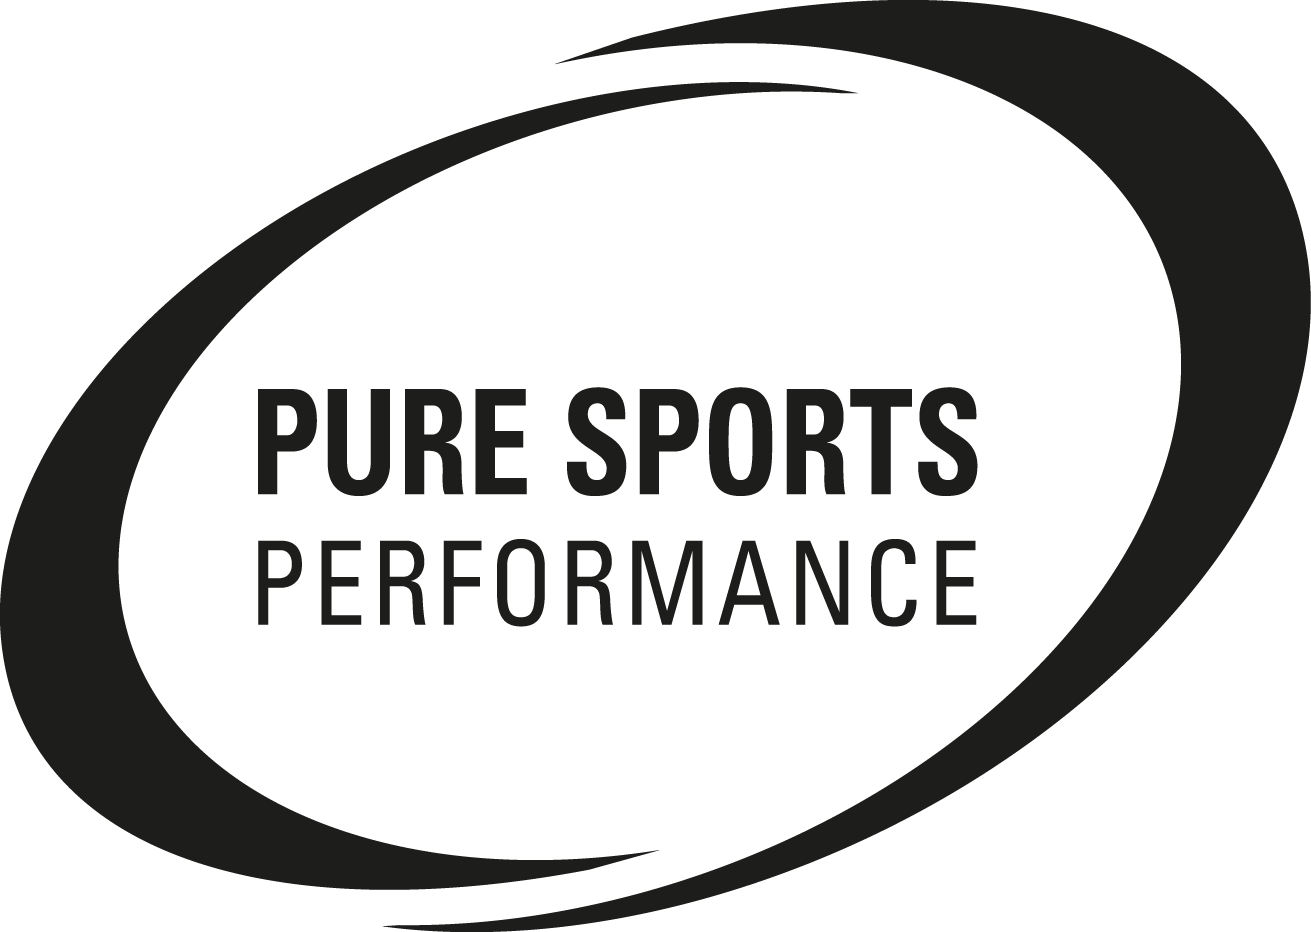 PURE SPORTS PERFORMANCE